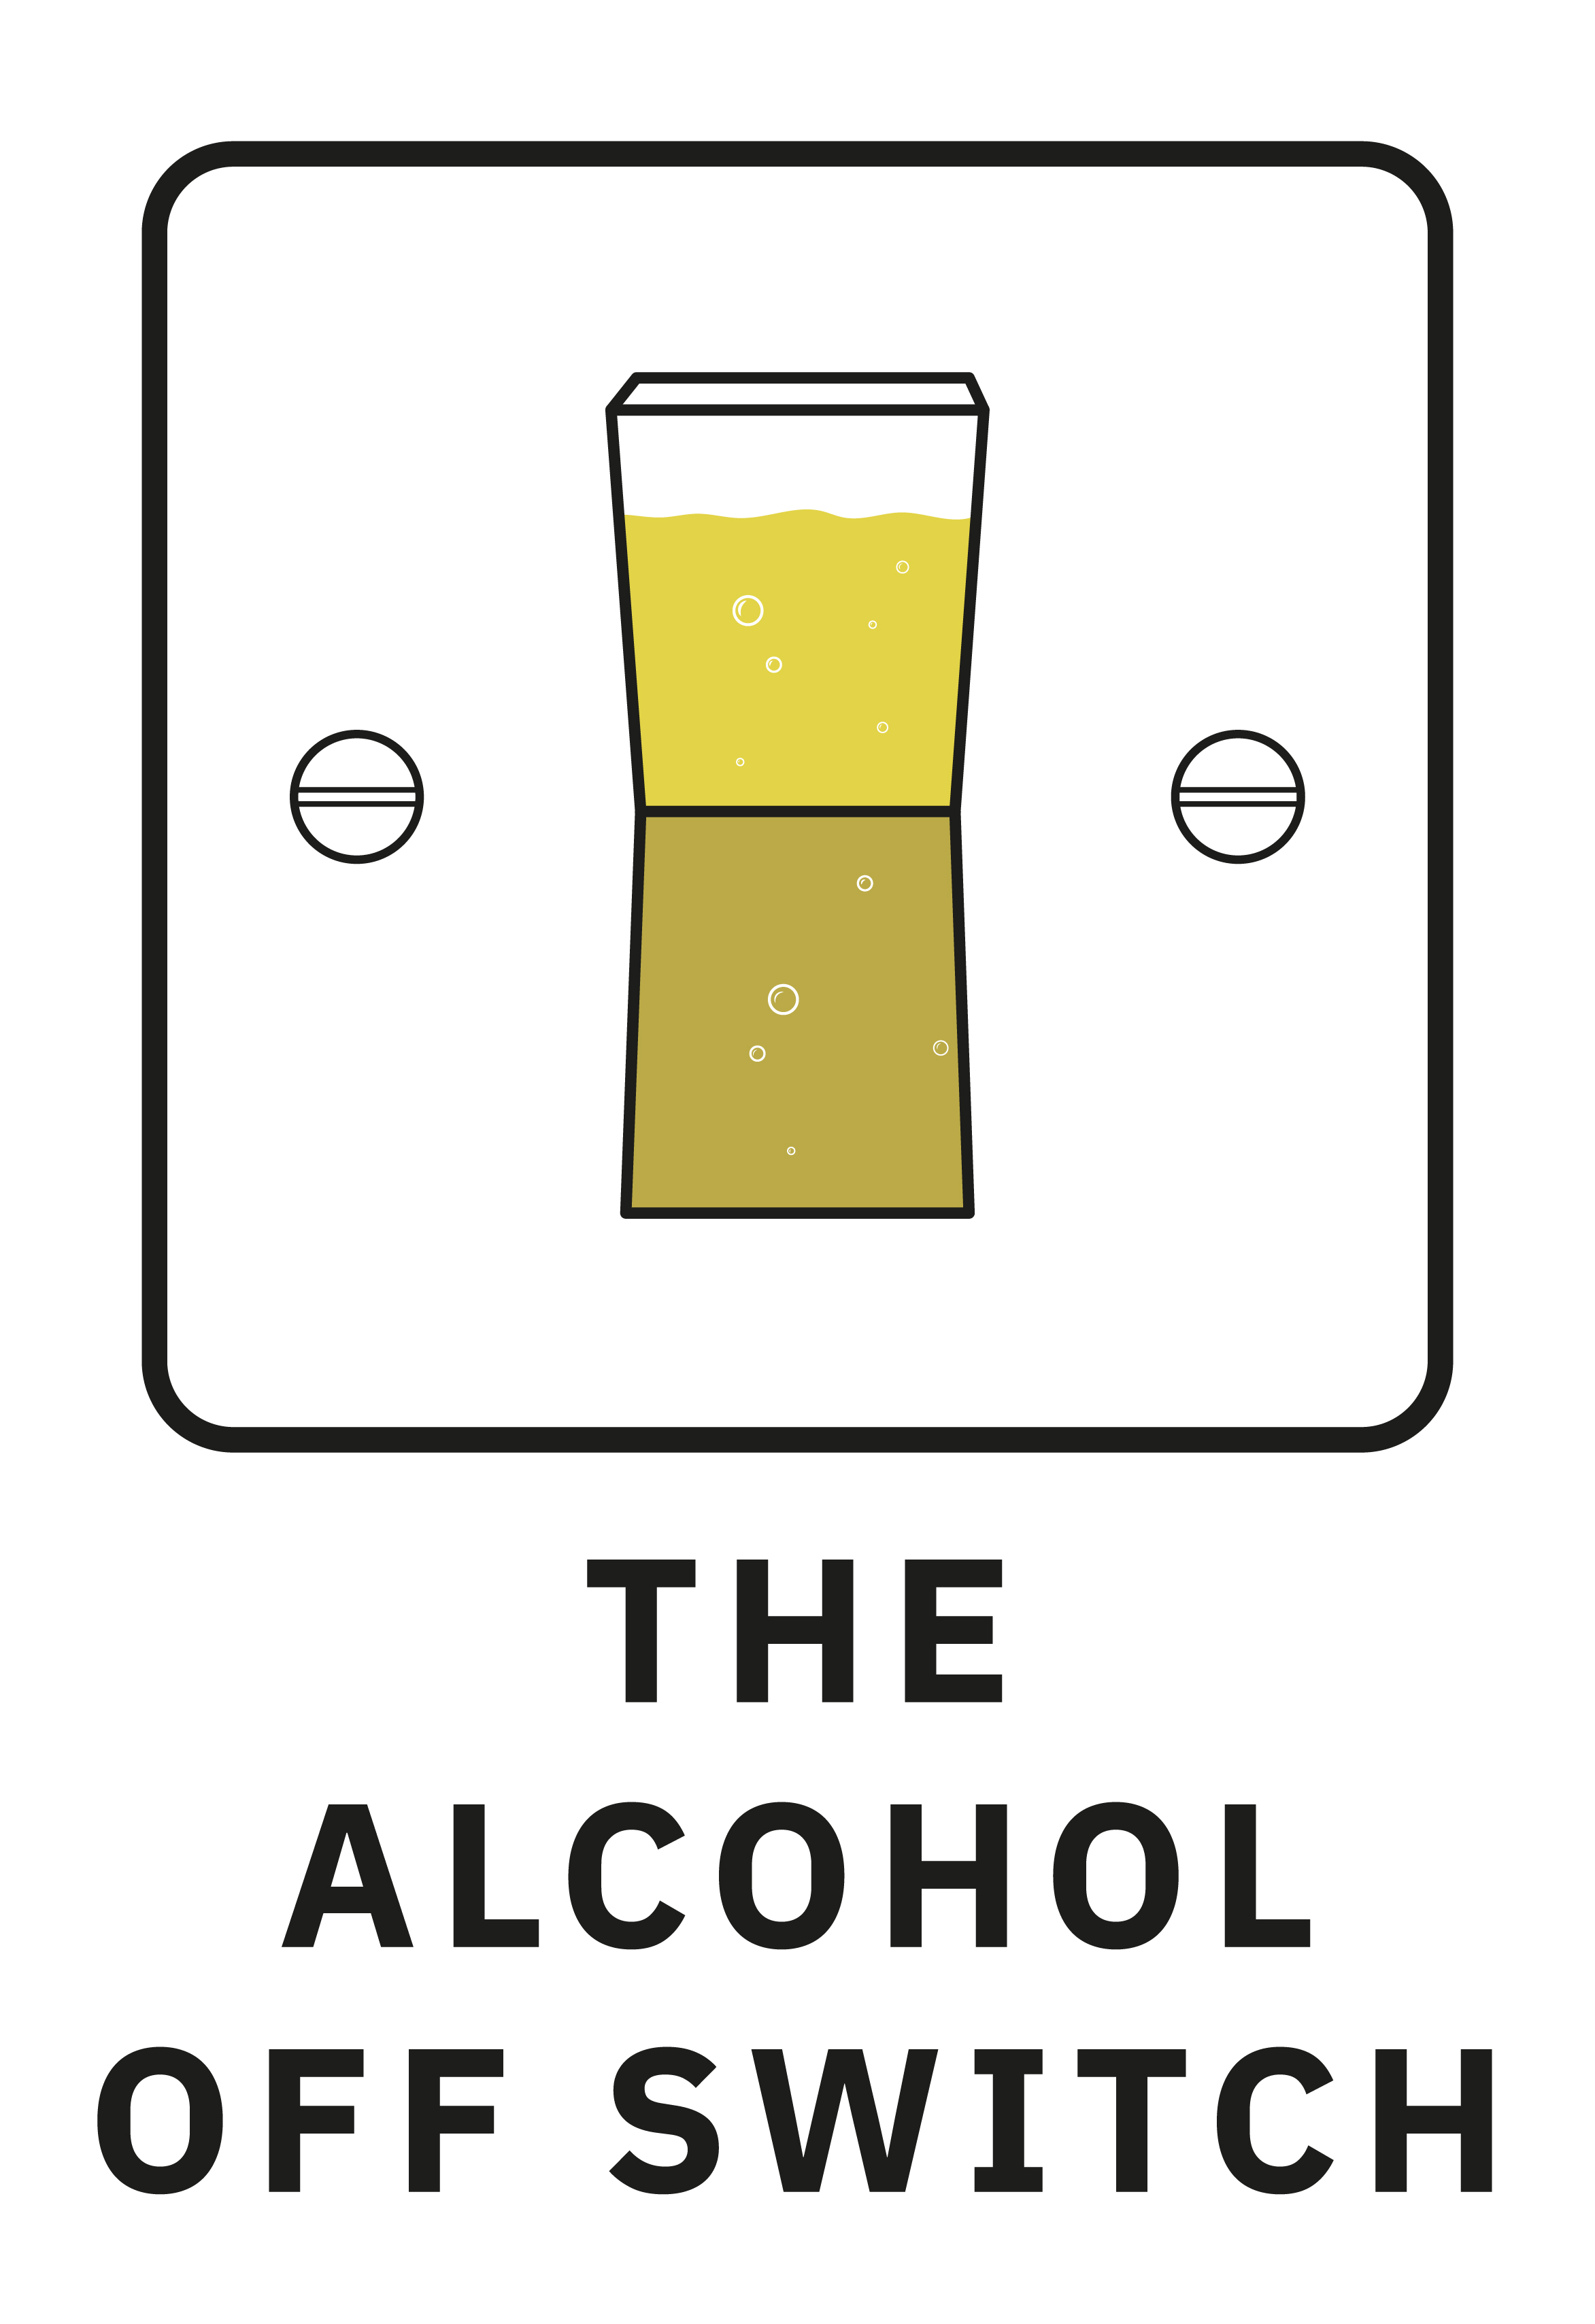 The alcohol off switch logo